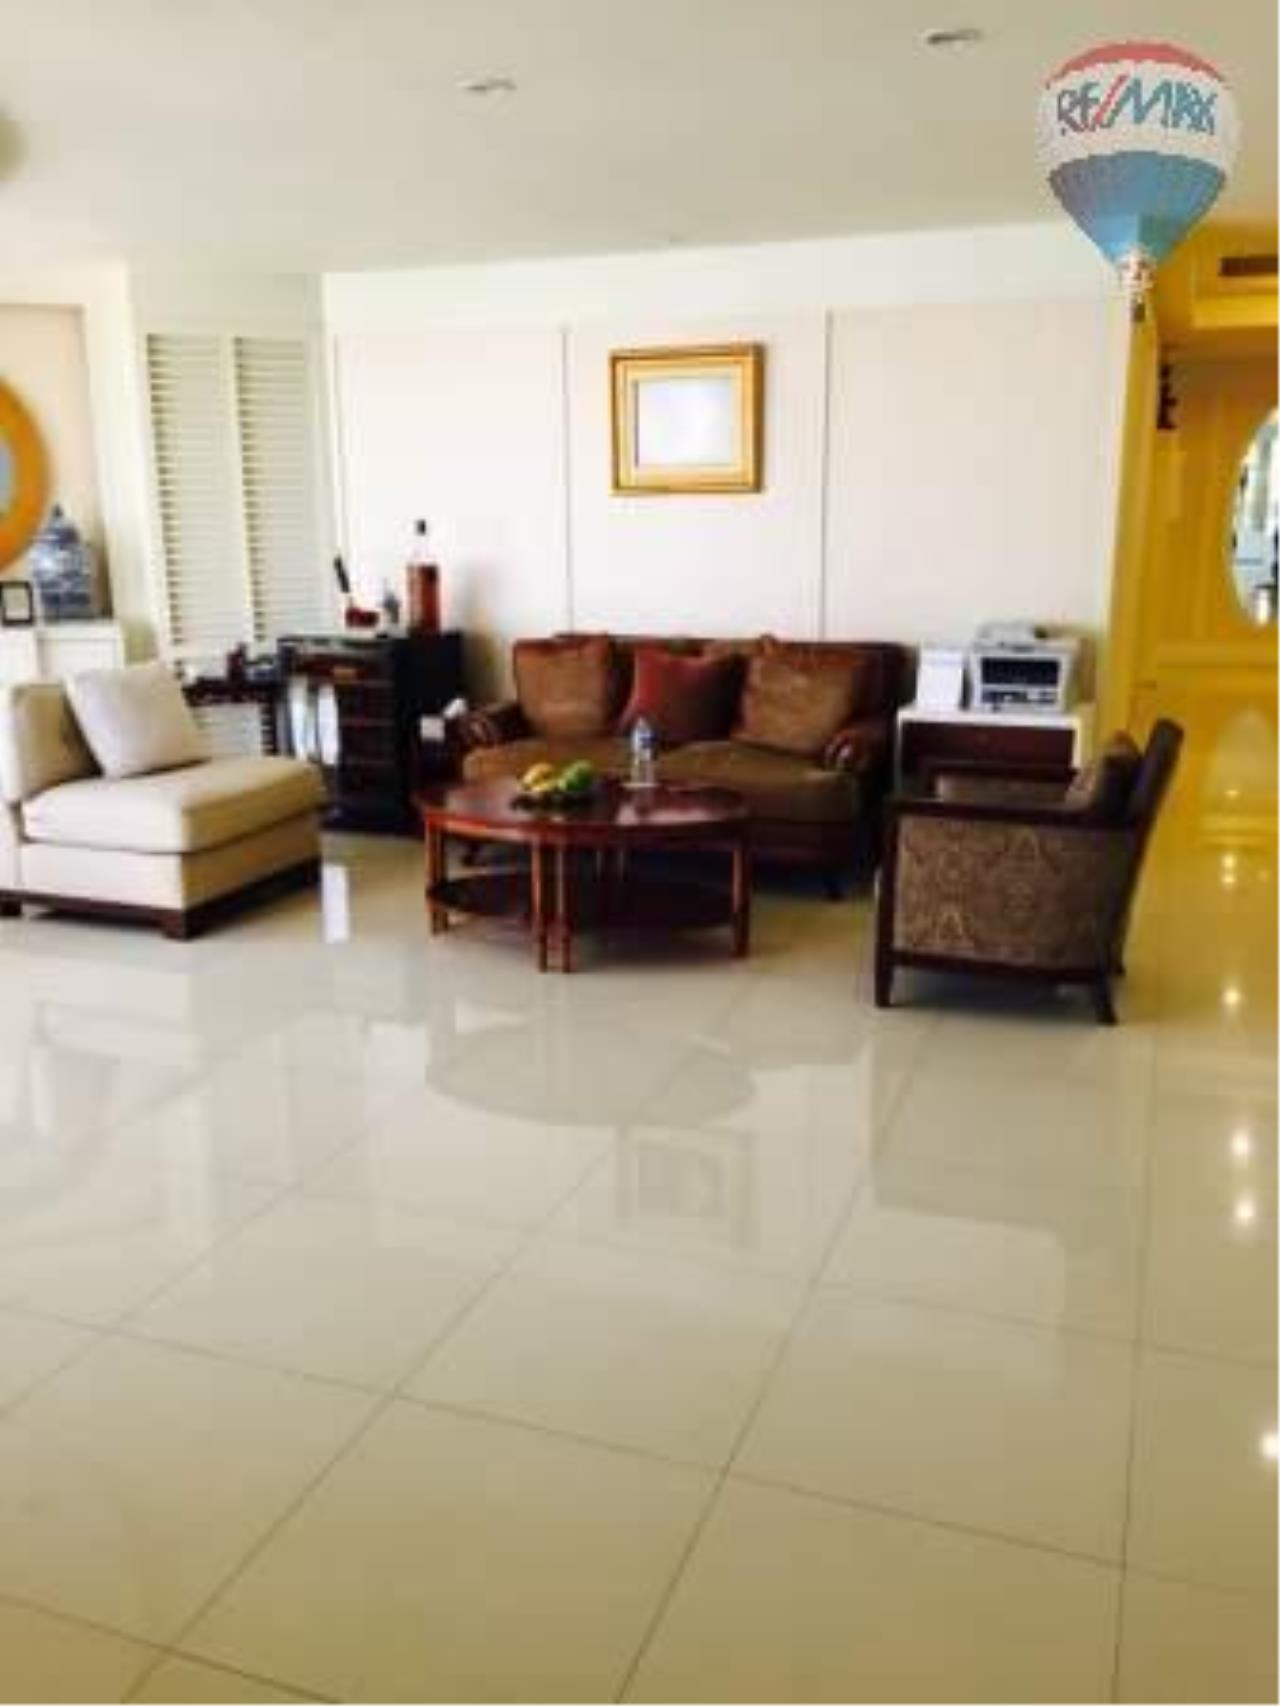 RE/MAX Properties Agency's 3 Bedrom 318 Sq.m For Sale at City Lakes 1